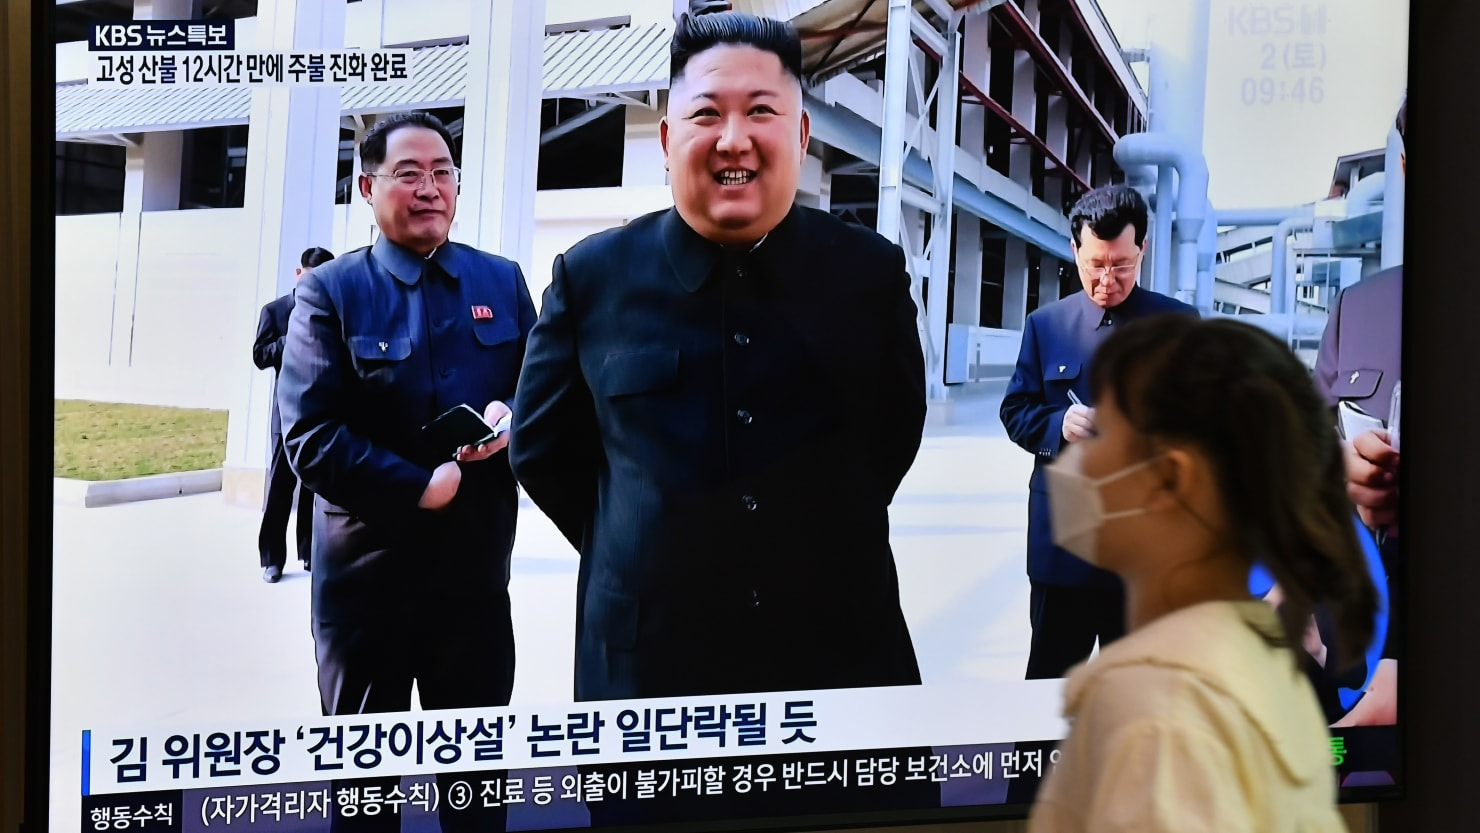 Kim Jong Un Finally Offers His Response to U.S. Election: More Nukes